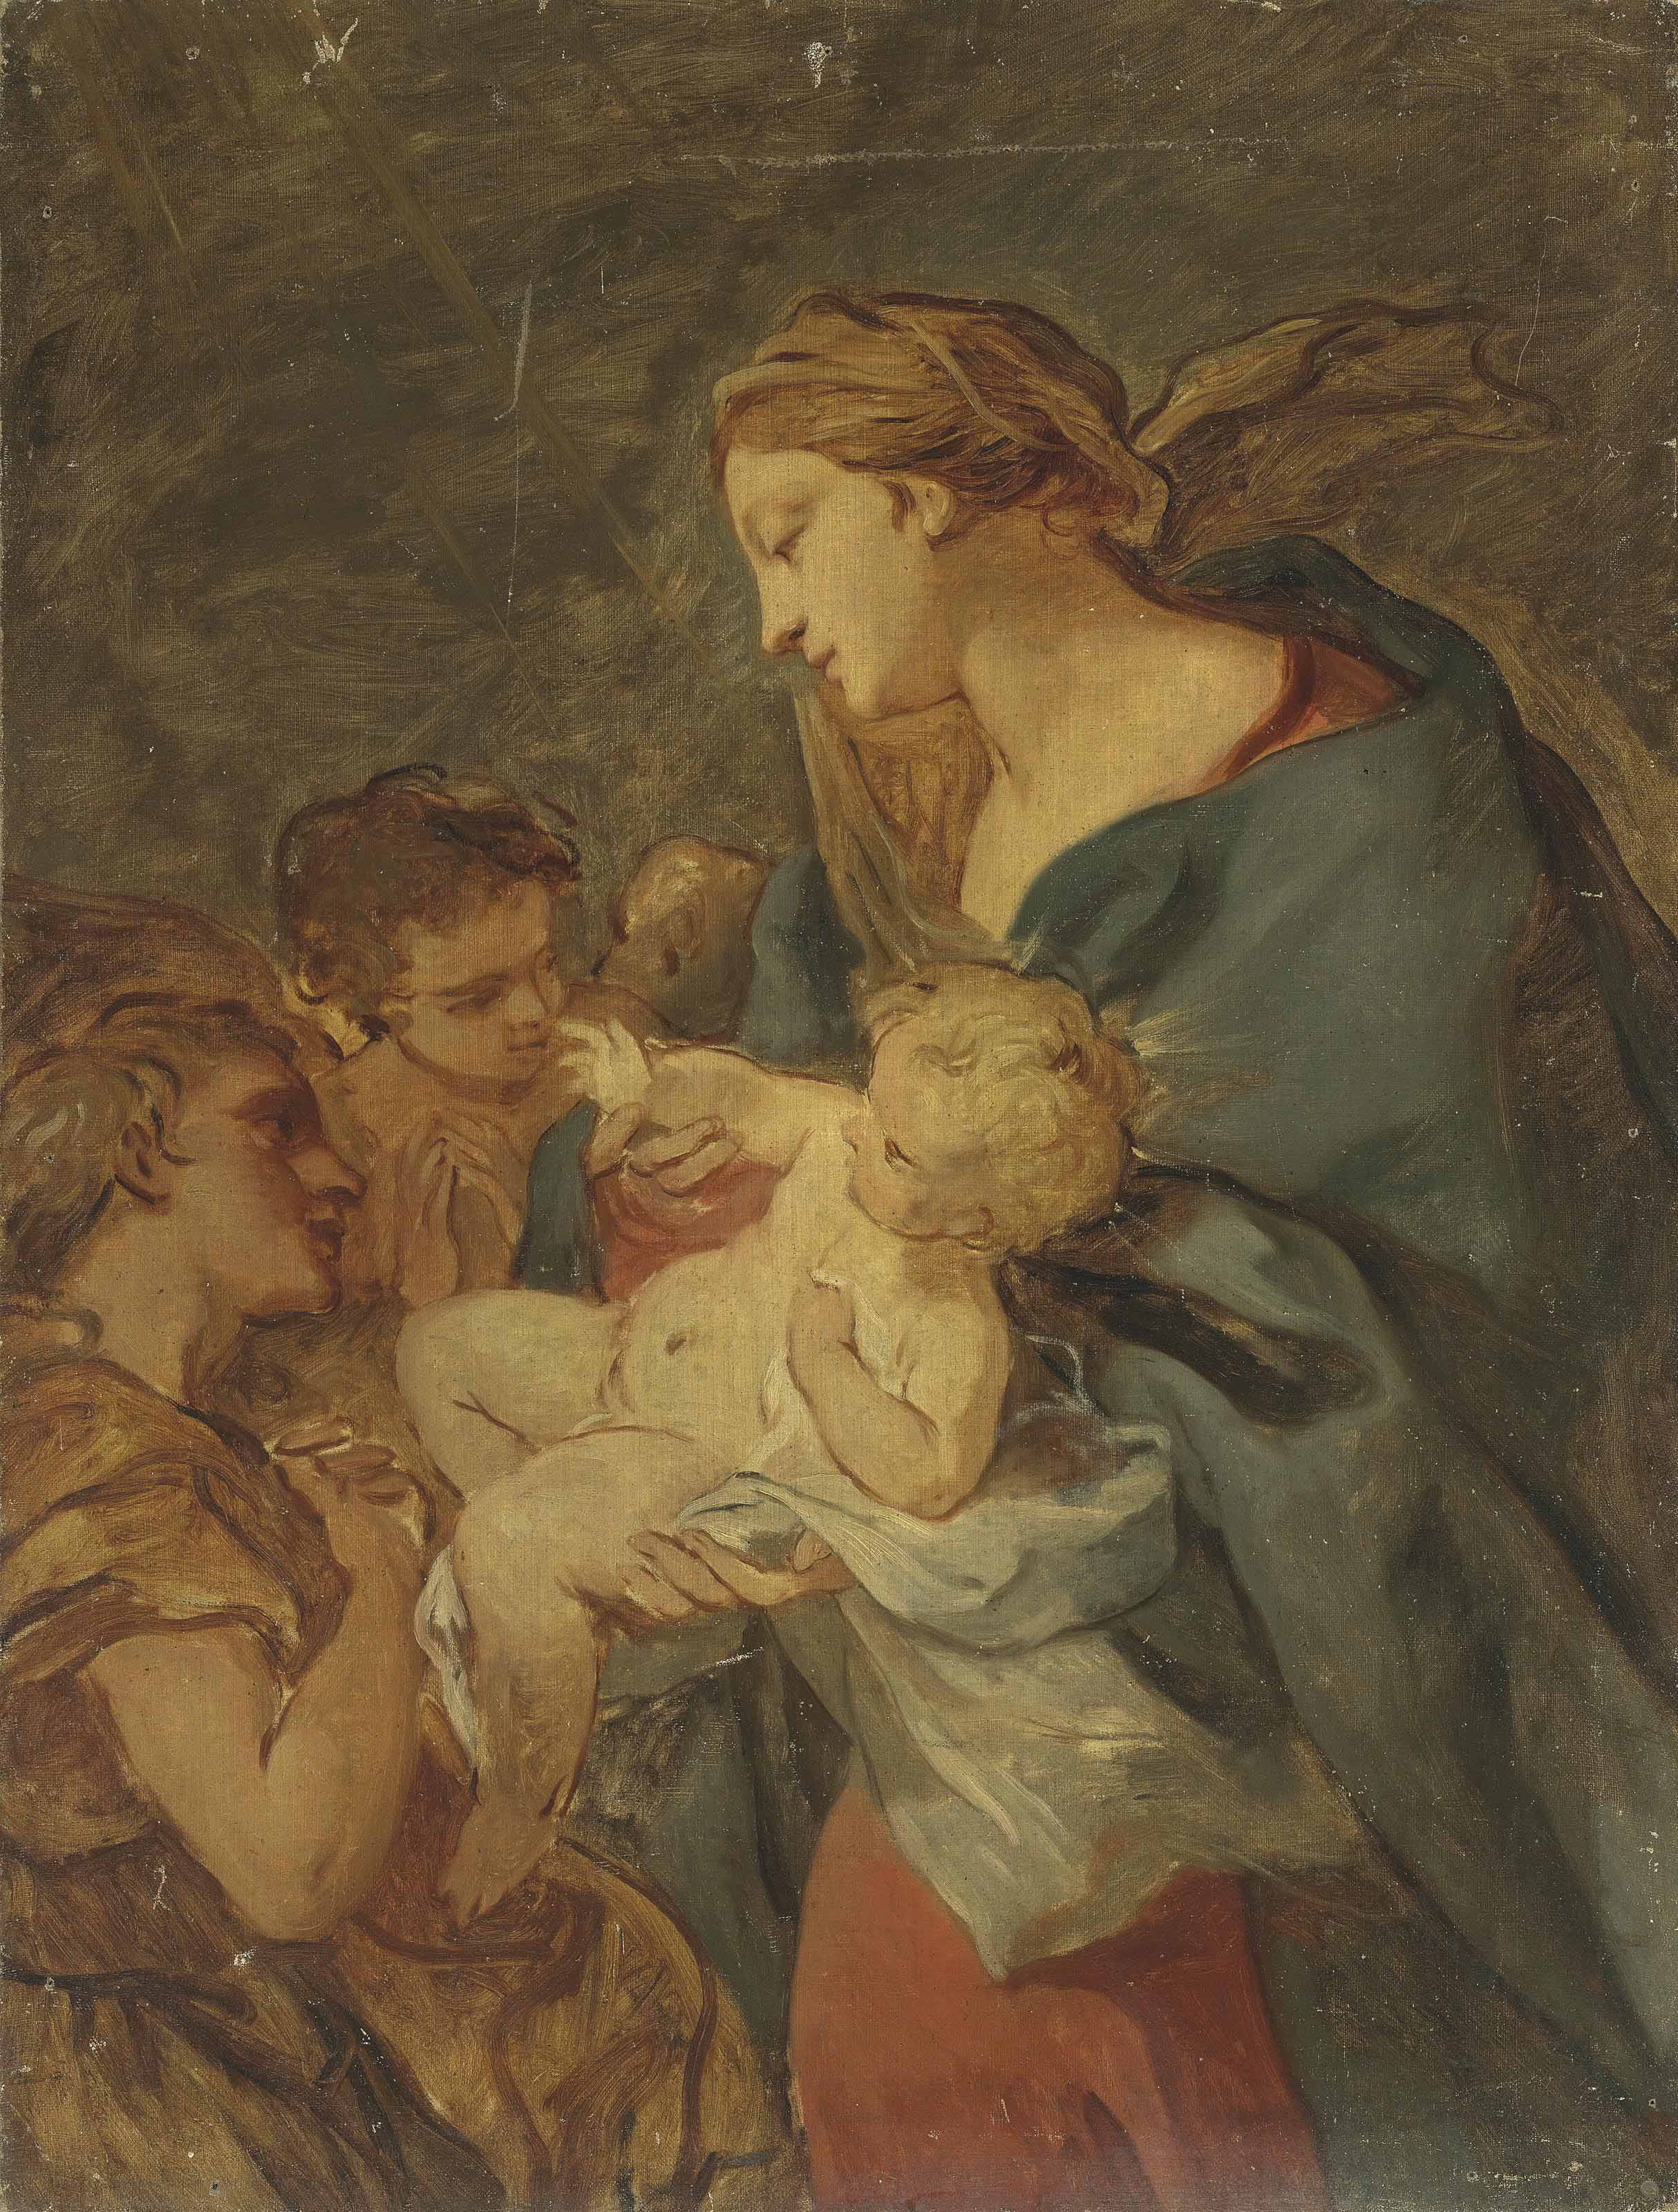 The Virgin and Child with attending angels